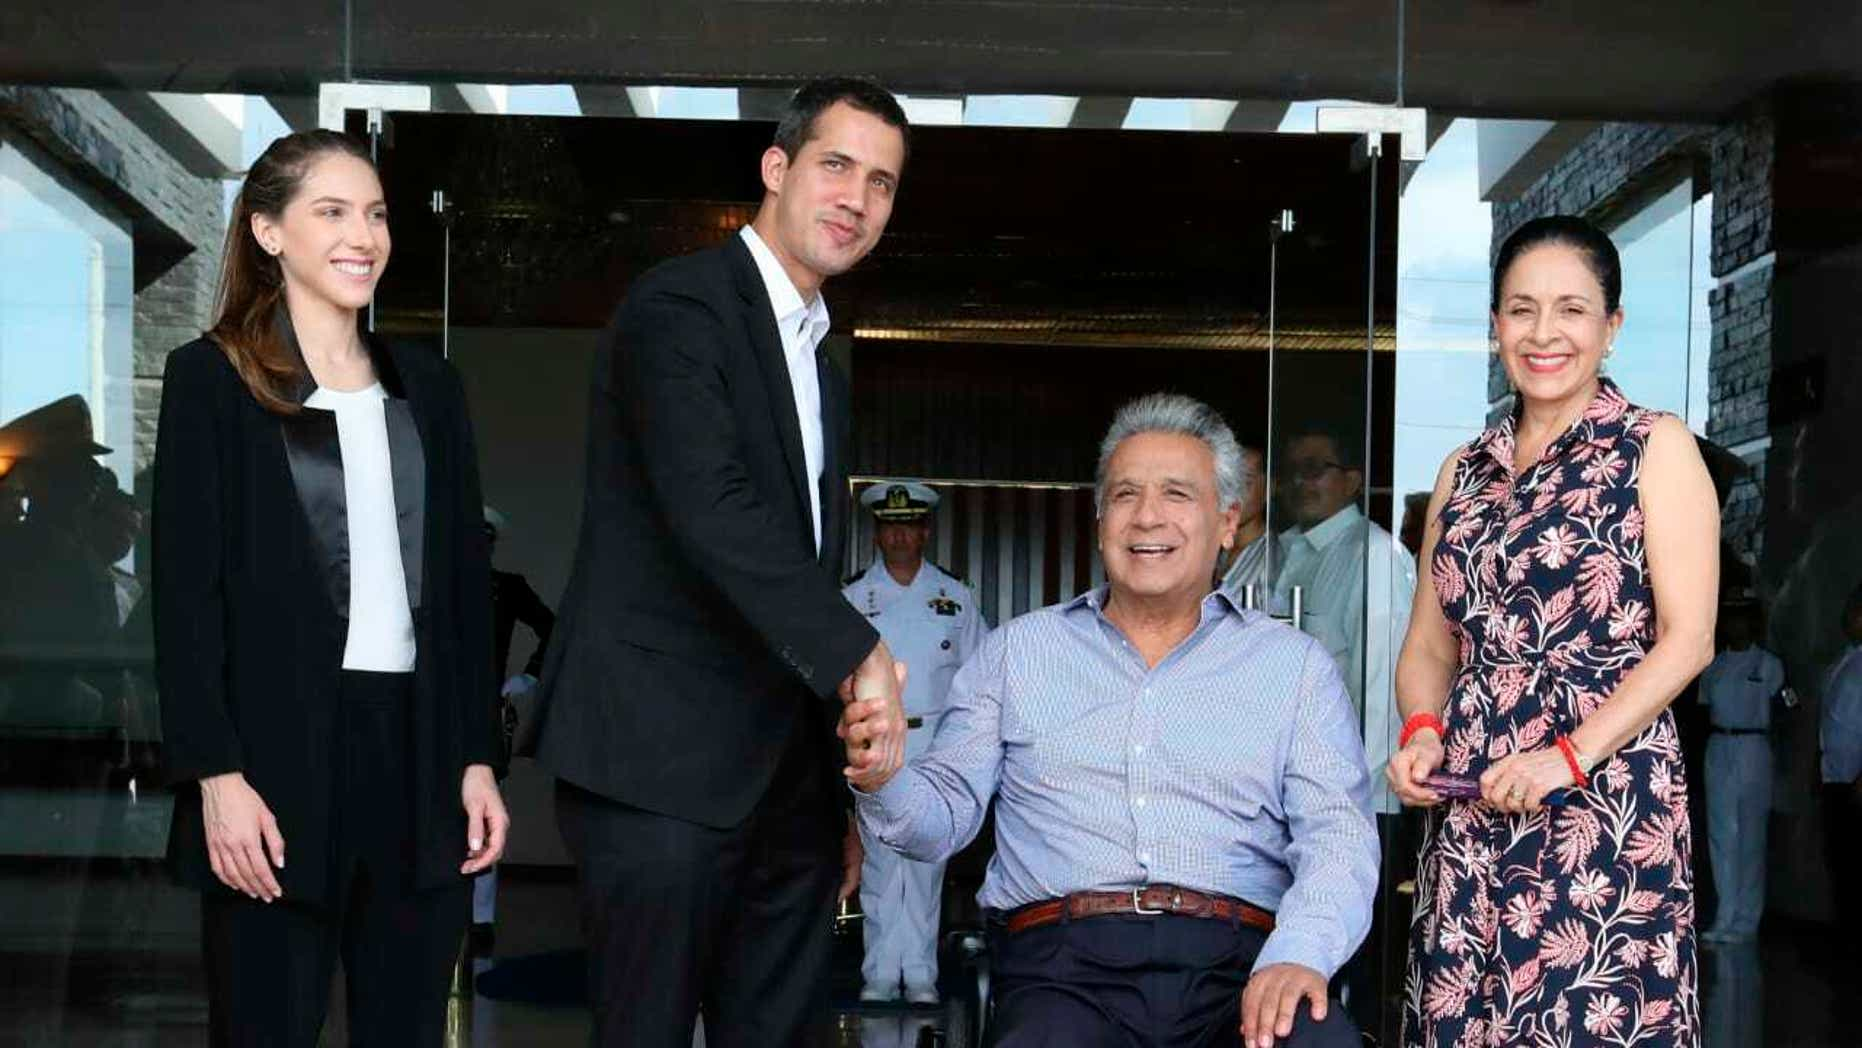 In this photo provided by Ecuador's Presidential Office, Ecuador's President Lenin Moreno, center right, and his wife Rocio Gonzalez, right, welcome Venezuela's self-declared interim president Juan Guaido, center left, and his wife Fabiana Rosales during a meeting in Salinas, Ecuador. Saturday, Feb. 2, 2019. Guaido is in tour of several South American capitals as part of a campaign to build international pressure on his rival Nicolas Maduro to quit. (AP Photo/Ecuador's Presidency)